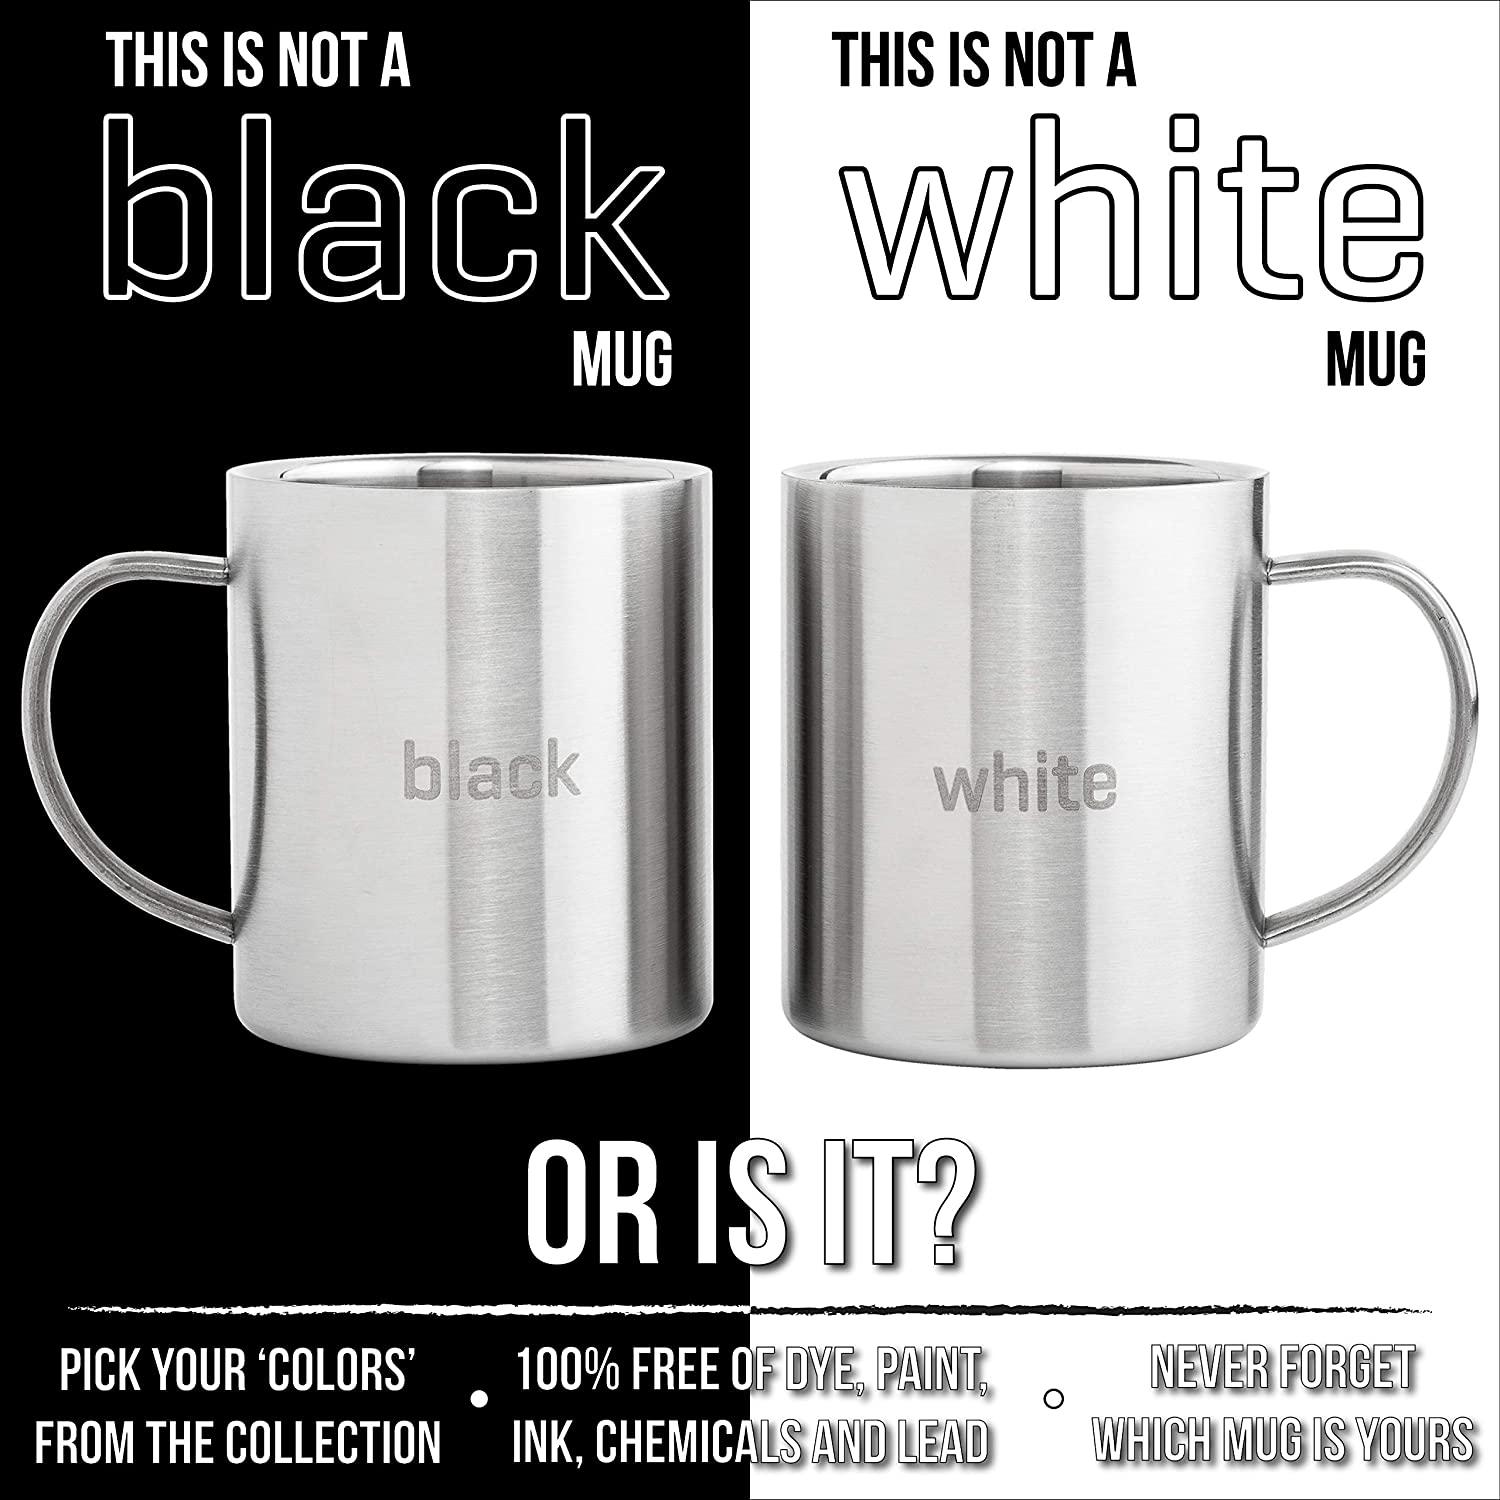 Shatterproof Set of 2 Cups with Laser Words Black /& White Double Wall BPA free 13.5oz Metal Coffee Mug Stainless Steel Coffee Mugs Camping Tea Cup Wide Handle Fits Popular Coffee Machines